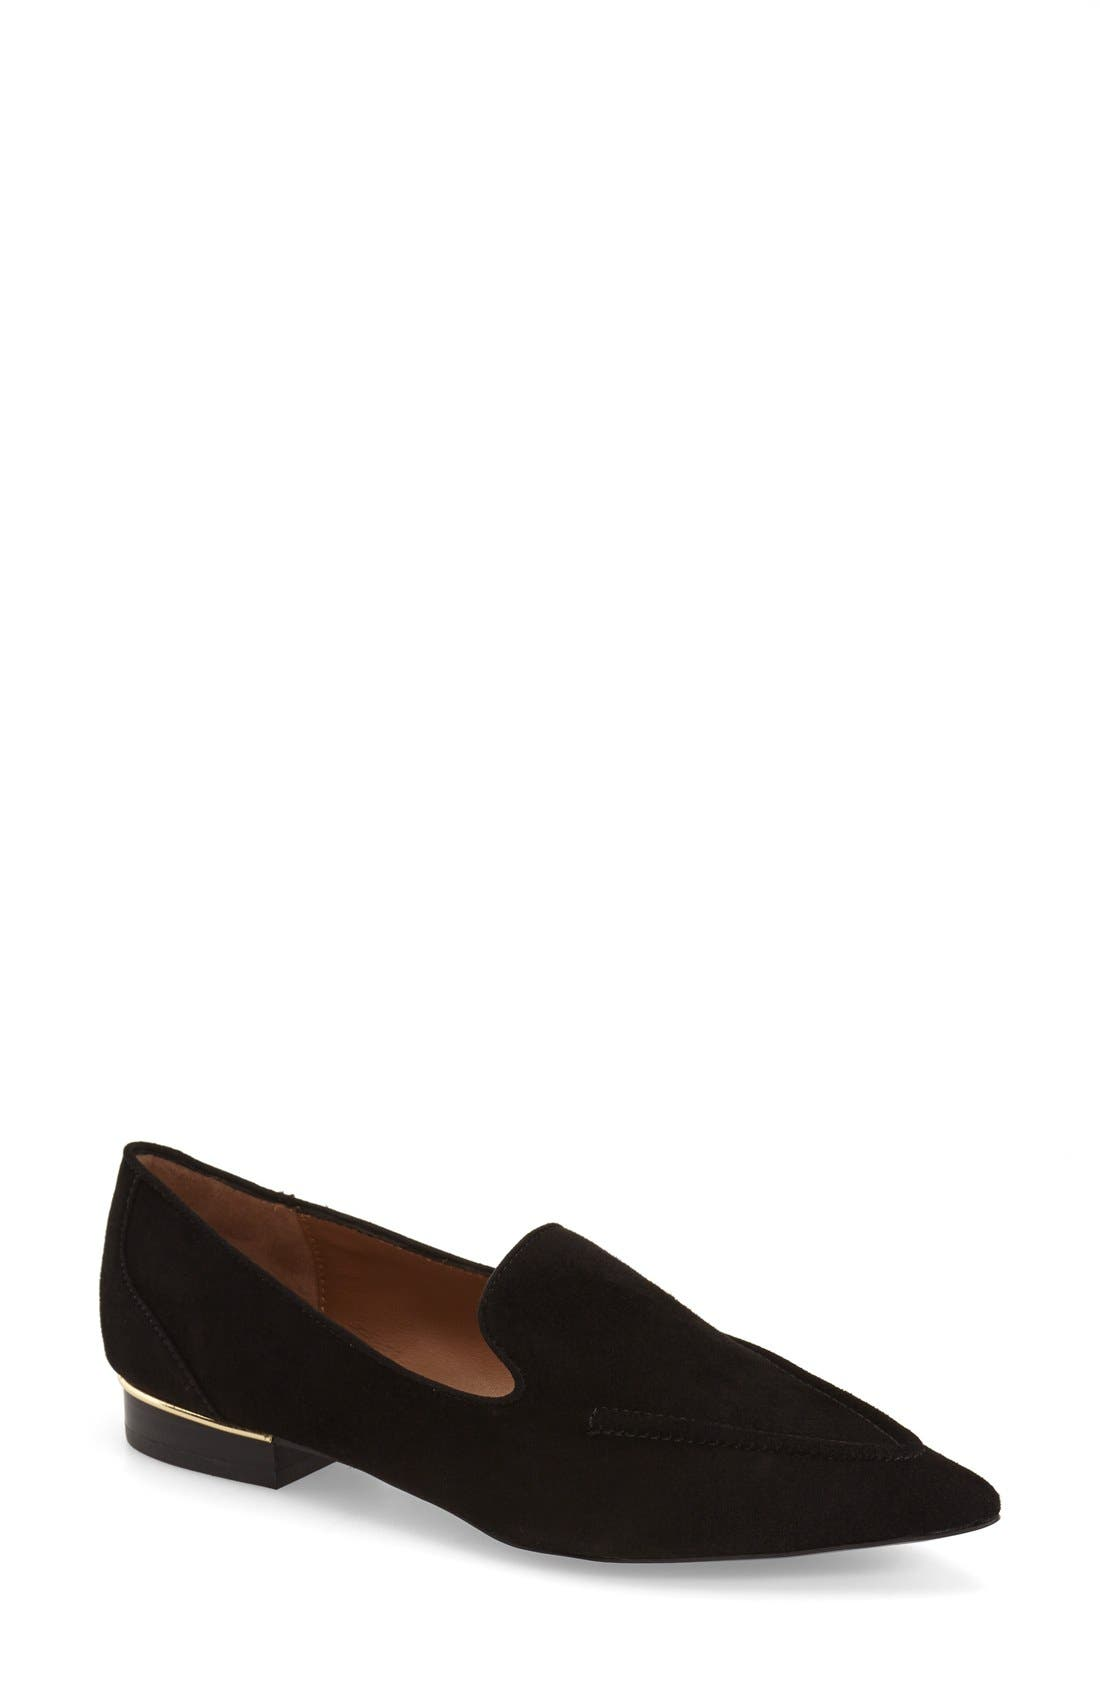 TOPSHOP 'Kindred' Pointy Toe Loafer, Main, color, 001